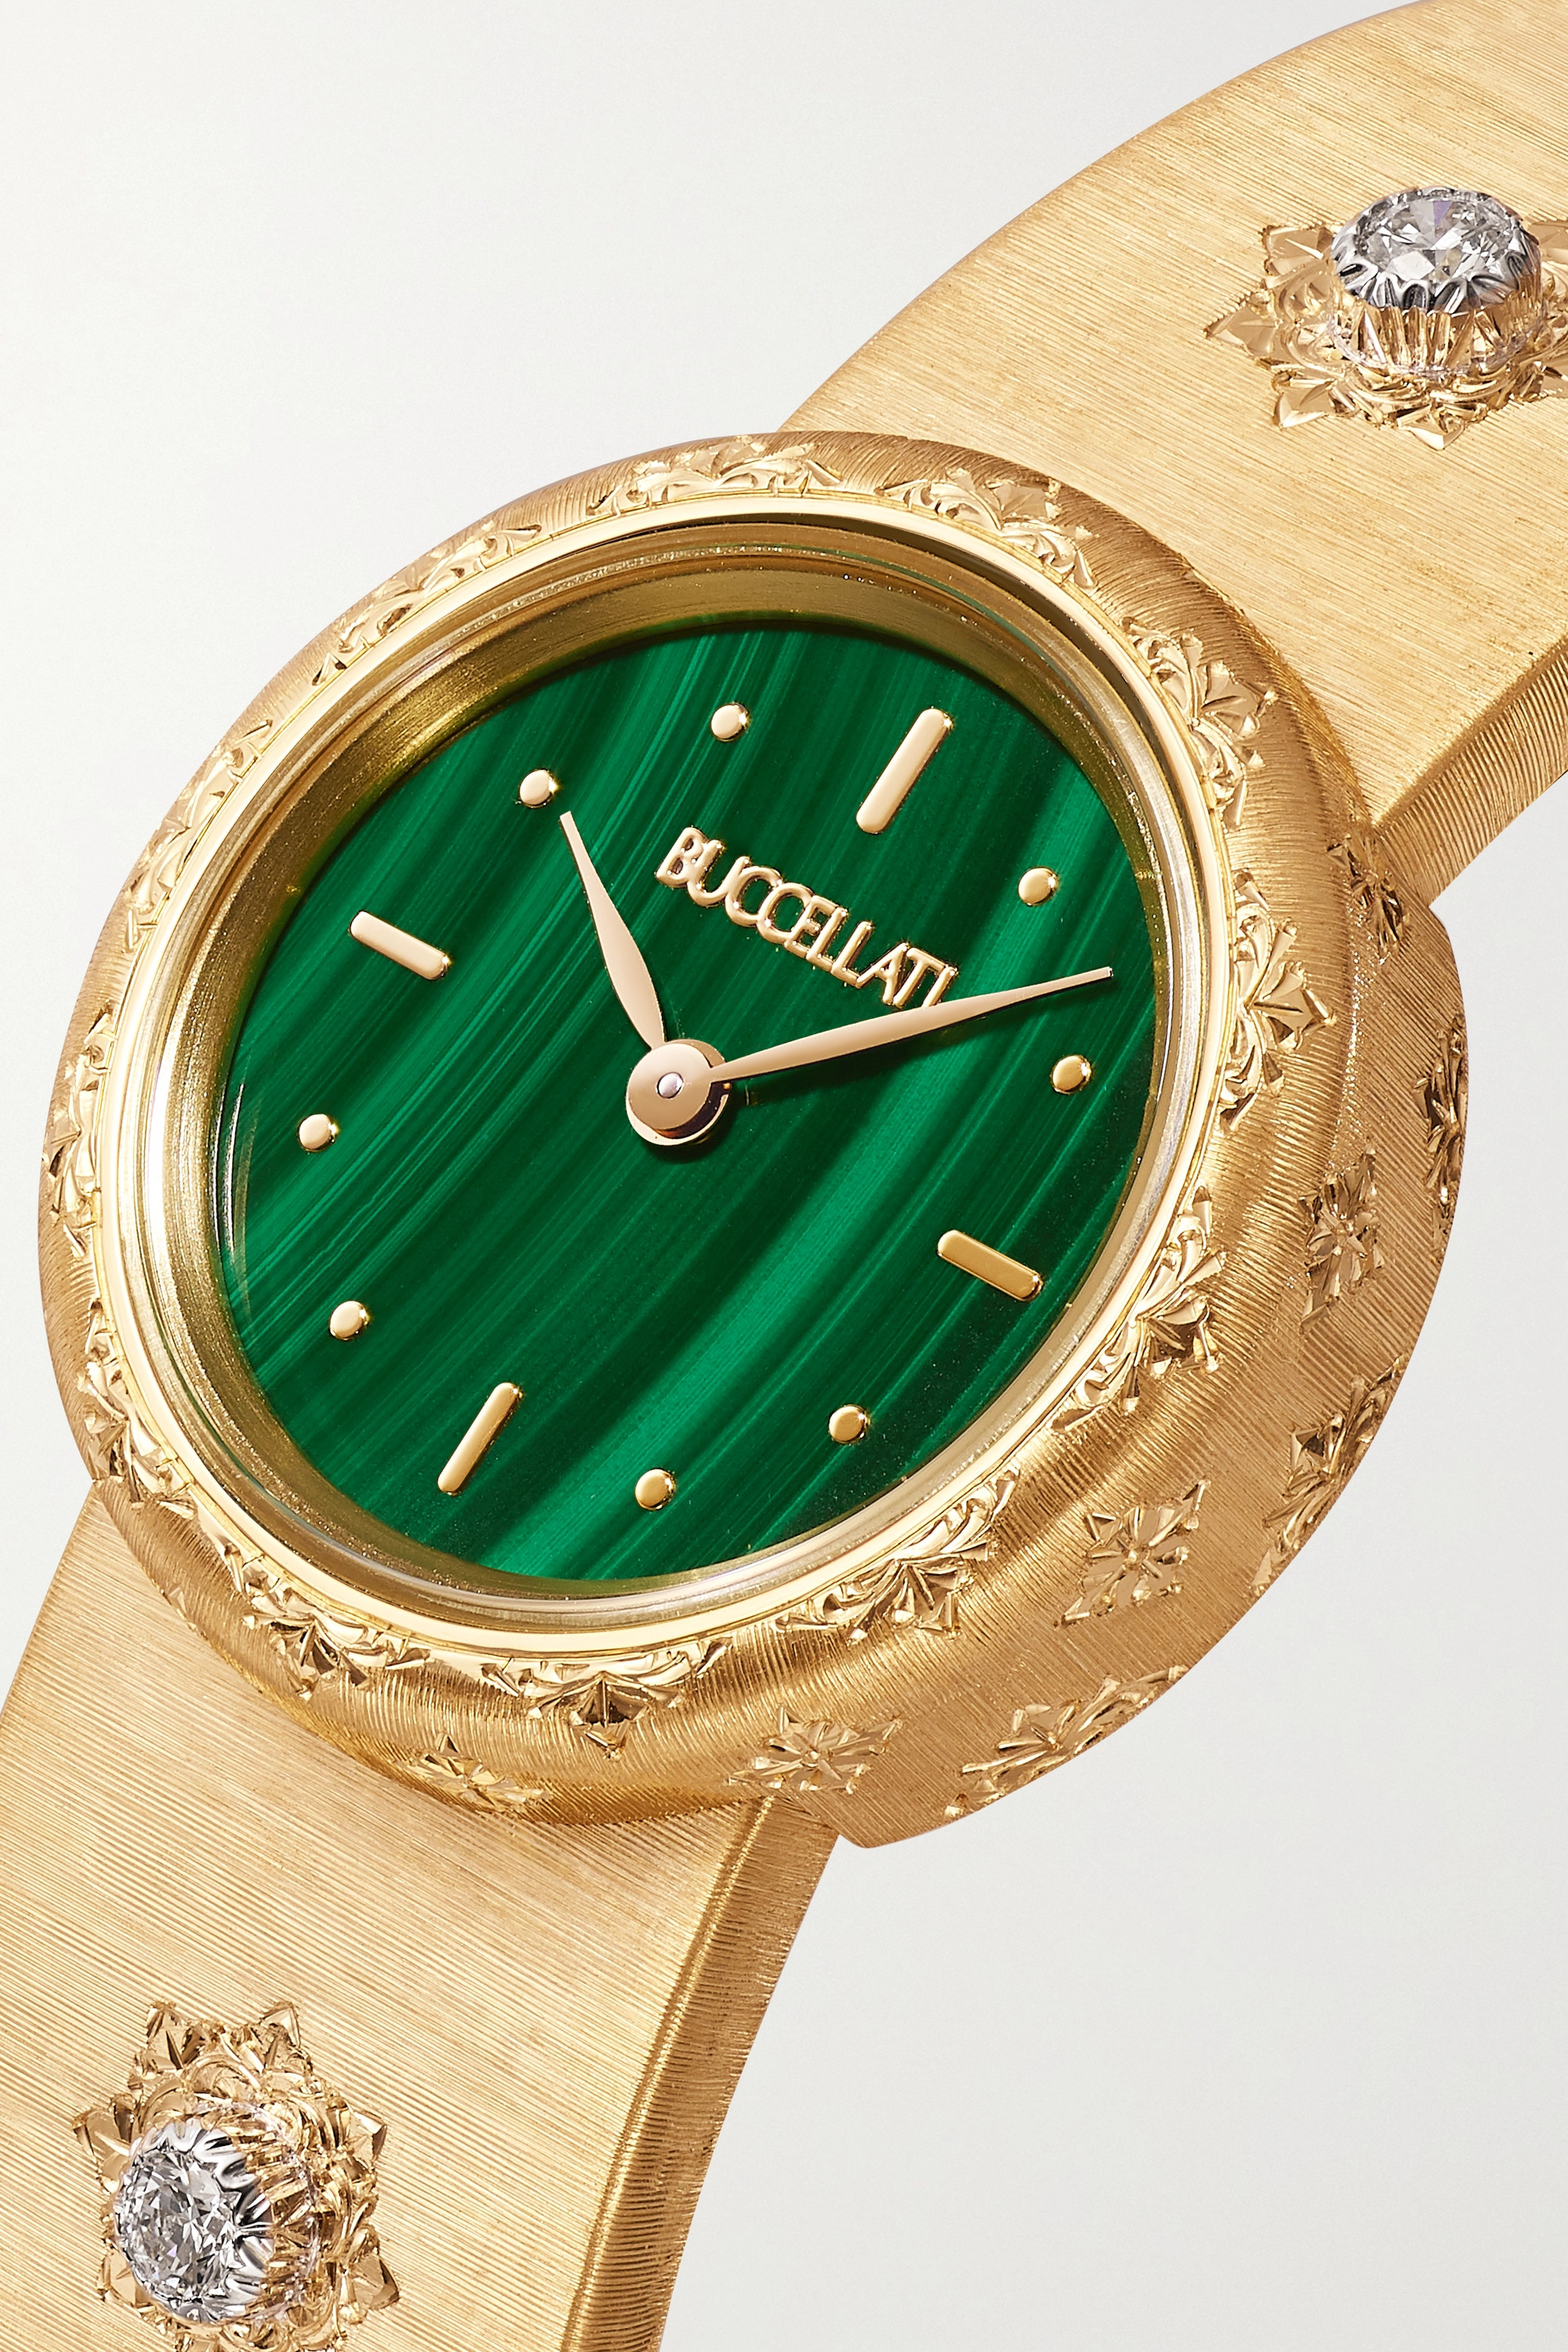 Buccellati Macri 24mm 18-karat gold, malachite and diamond watch